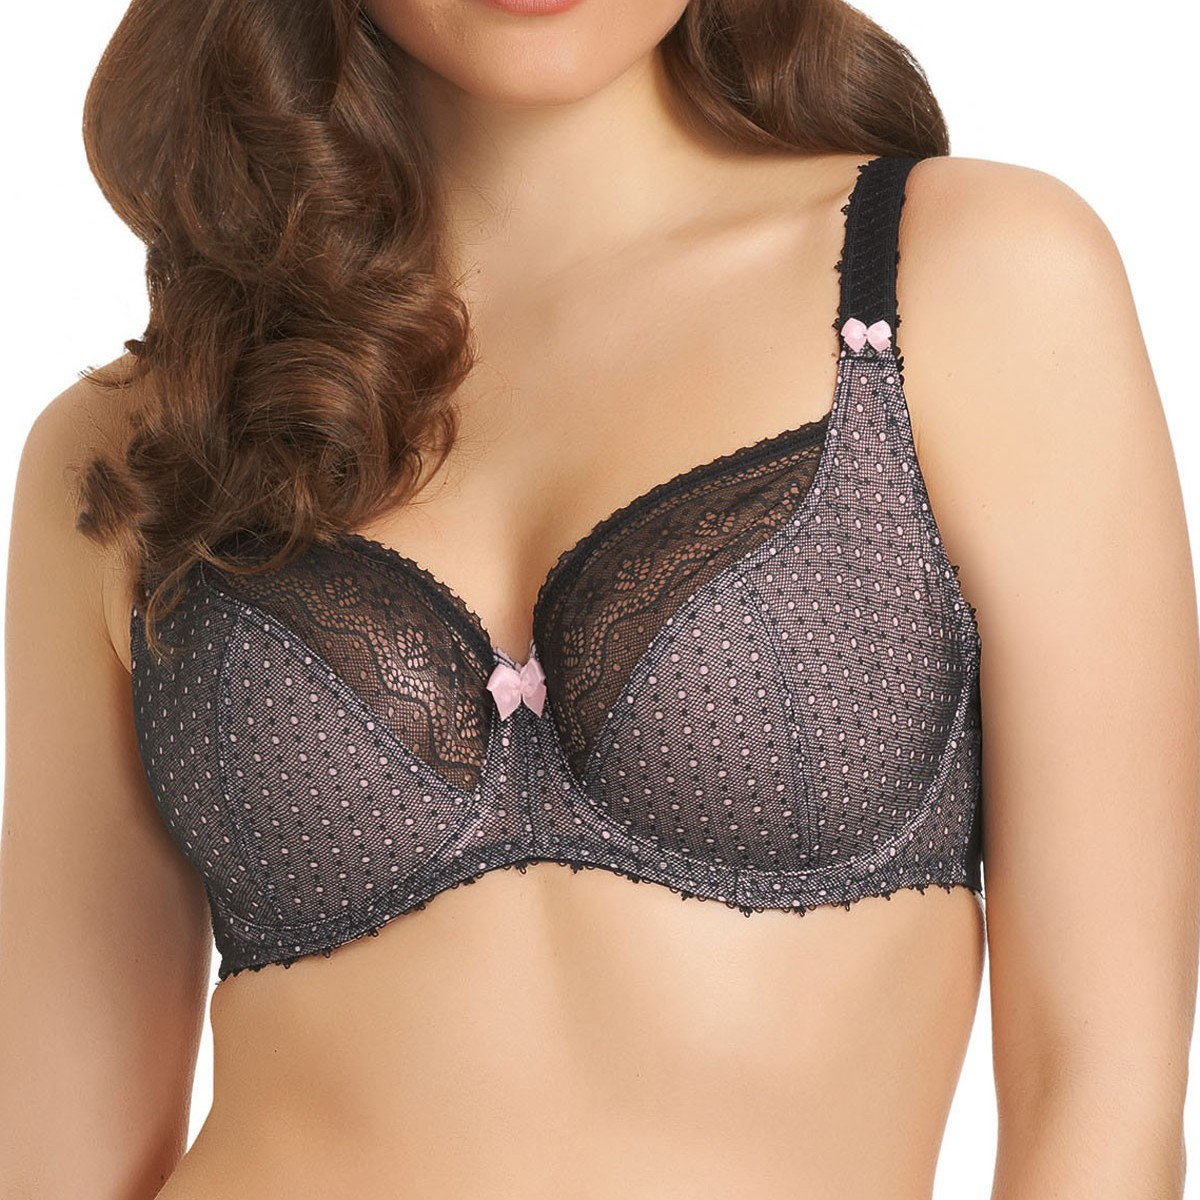 Freya Gem Underwired Balcony Bra GG - K Cup - Black